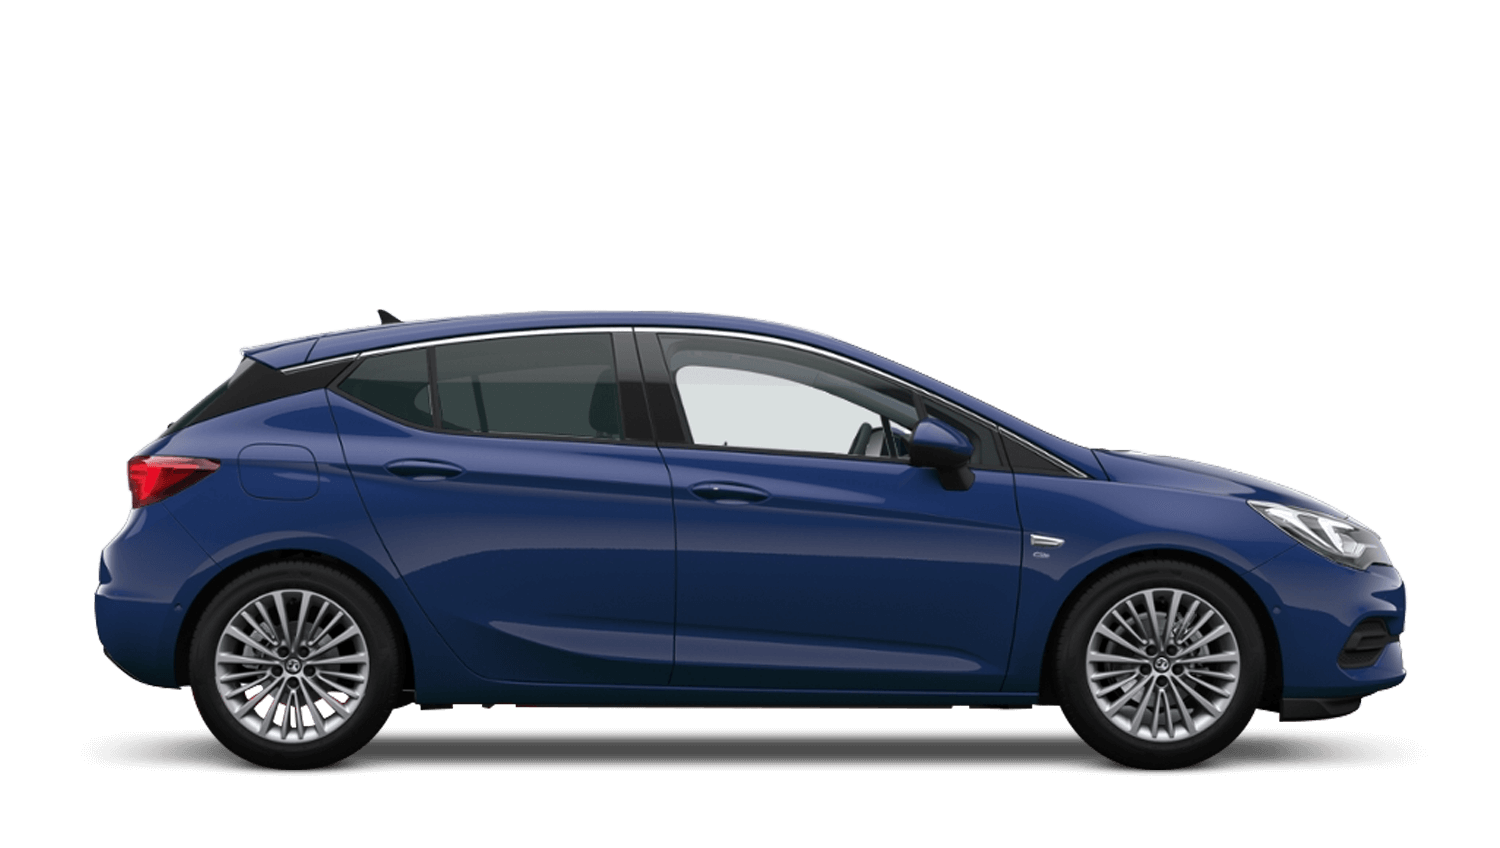 Aegean Blue (Solid) New Vauxhall Astra